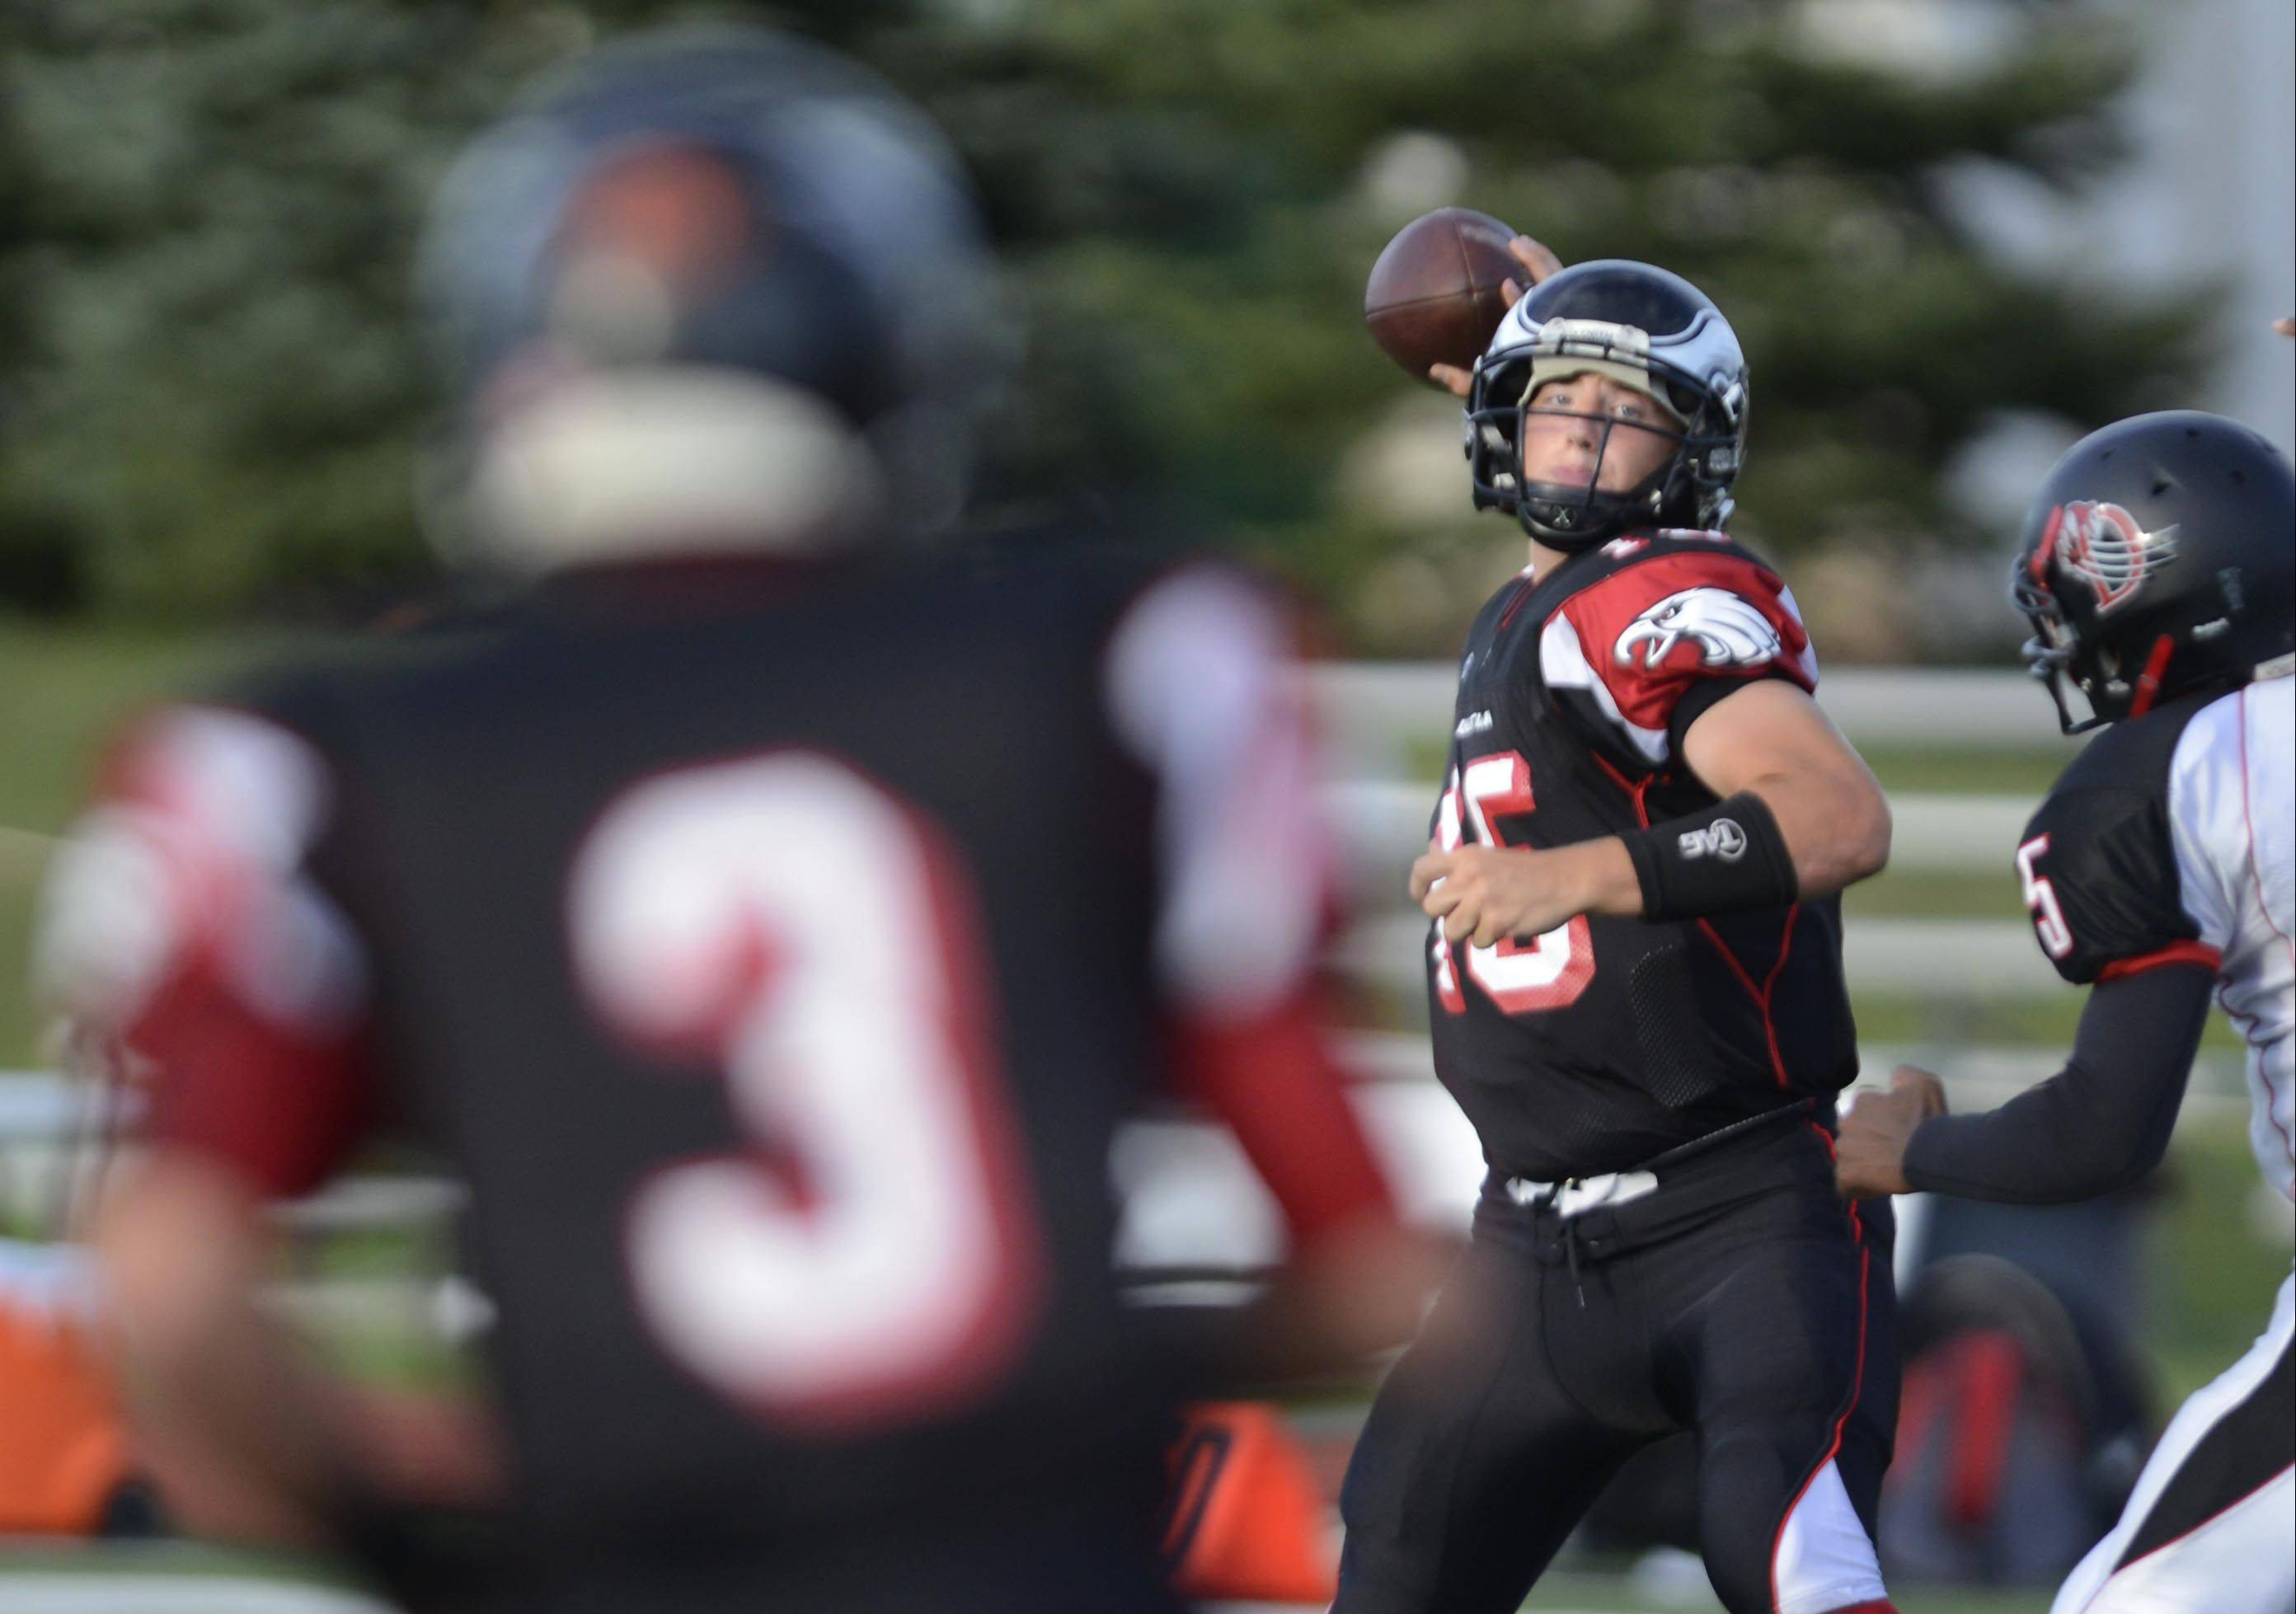 Aurora Christian quarterback Austin Bray, pictured earlier this season throwing a pass to wide receiver Brandon Walgren, completed 8 of 11 passes last week against Oregon for 238 yards, 3 touchdowns and no interceptions. He also ran for a score.